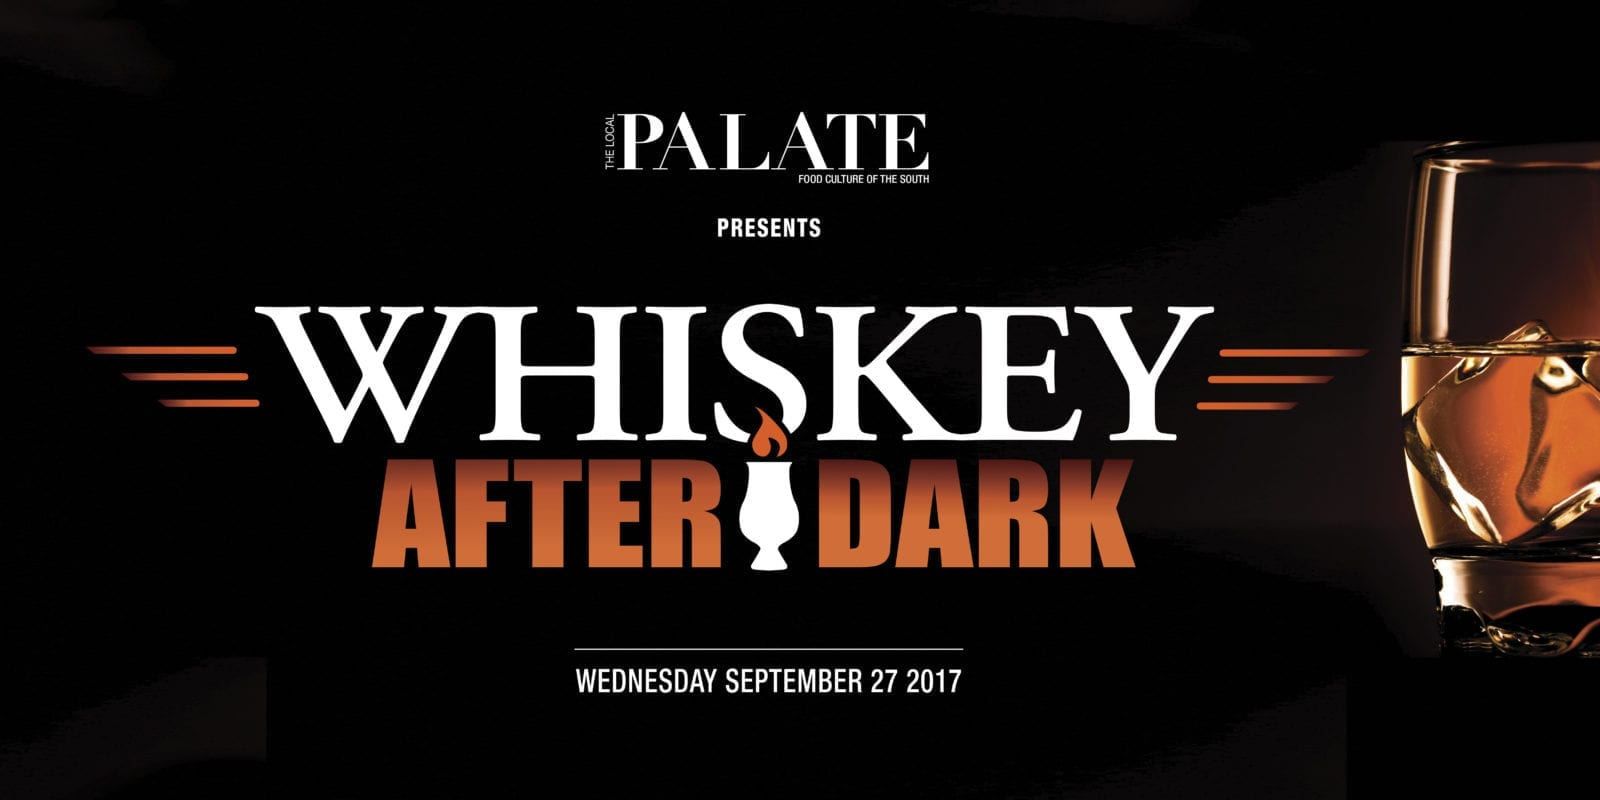 Don't Miss Whiskey After Dark